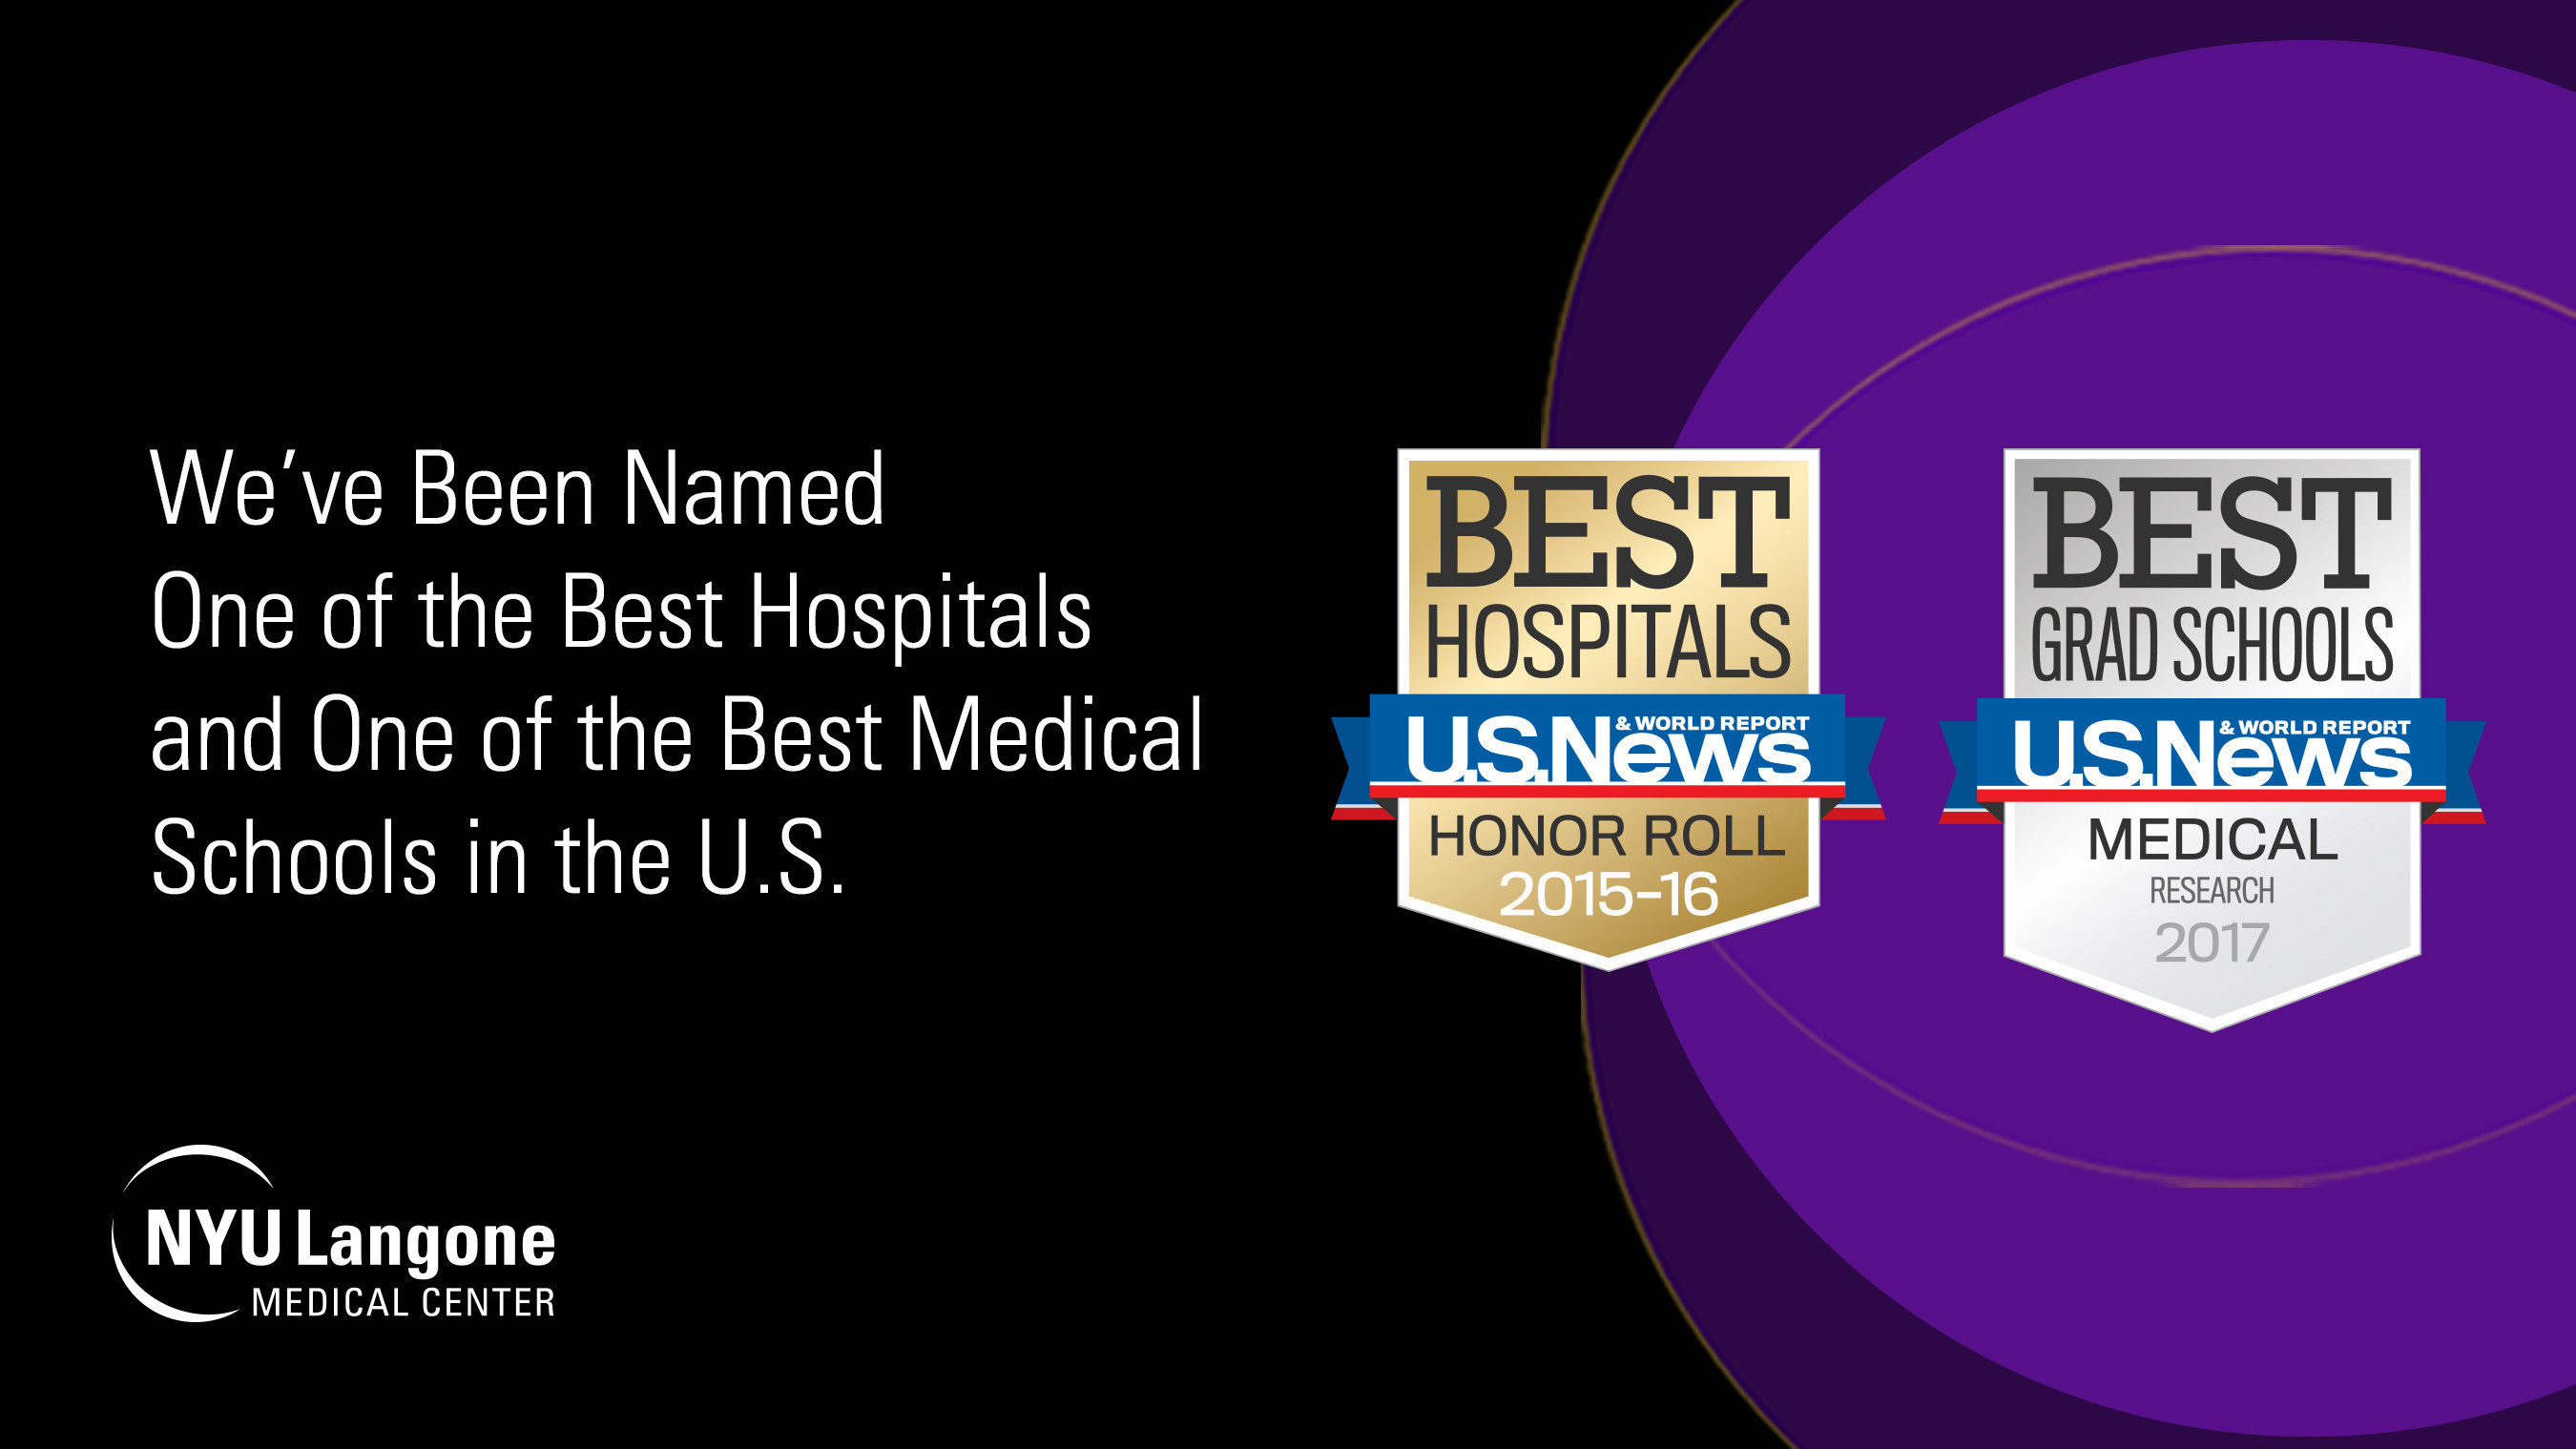 Tisch Hospital Ranking Nyu School Of Medicine Is 11 In The Nation And 2 In New York On